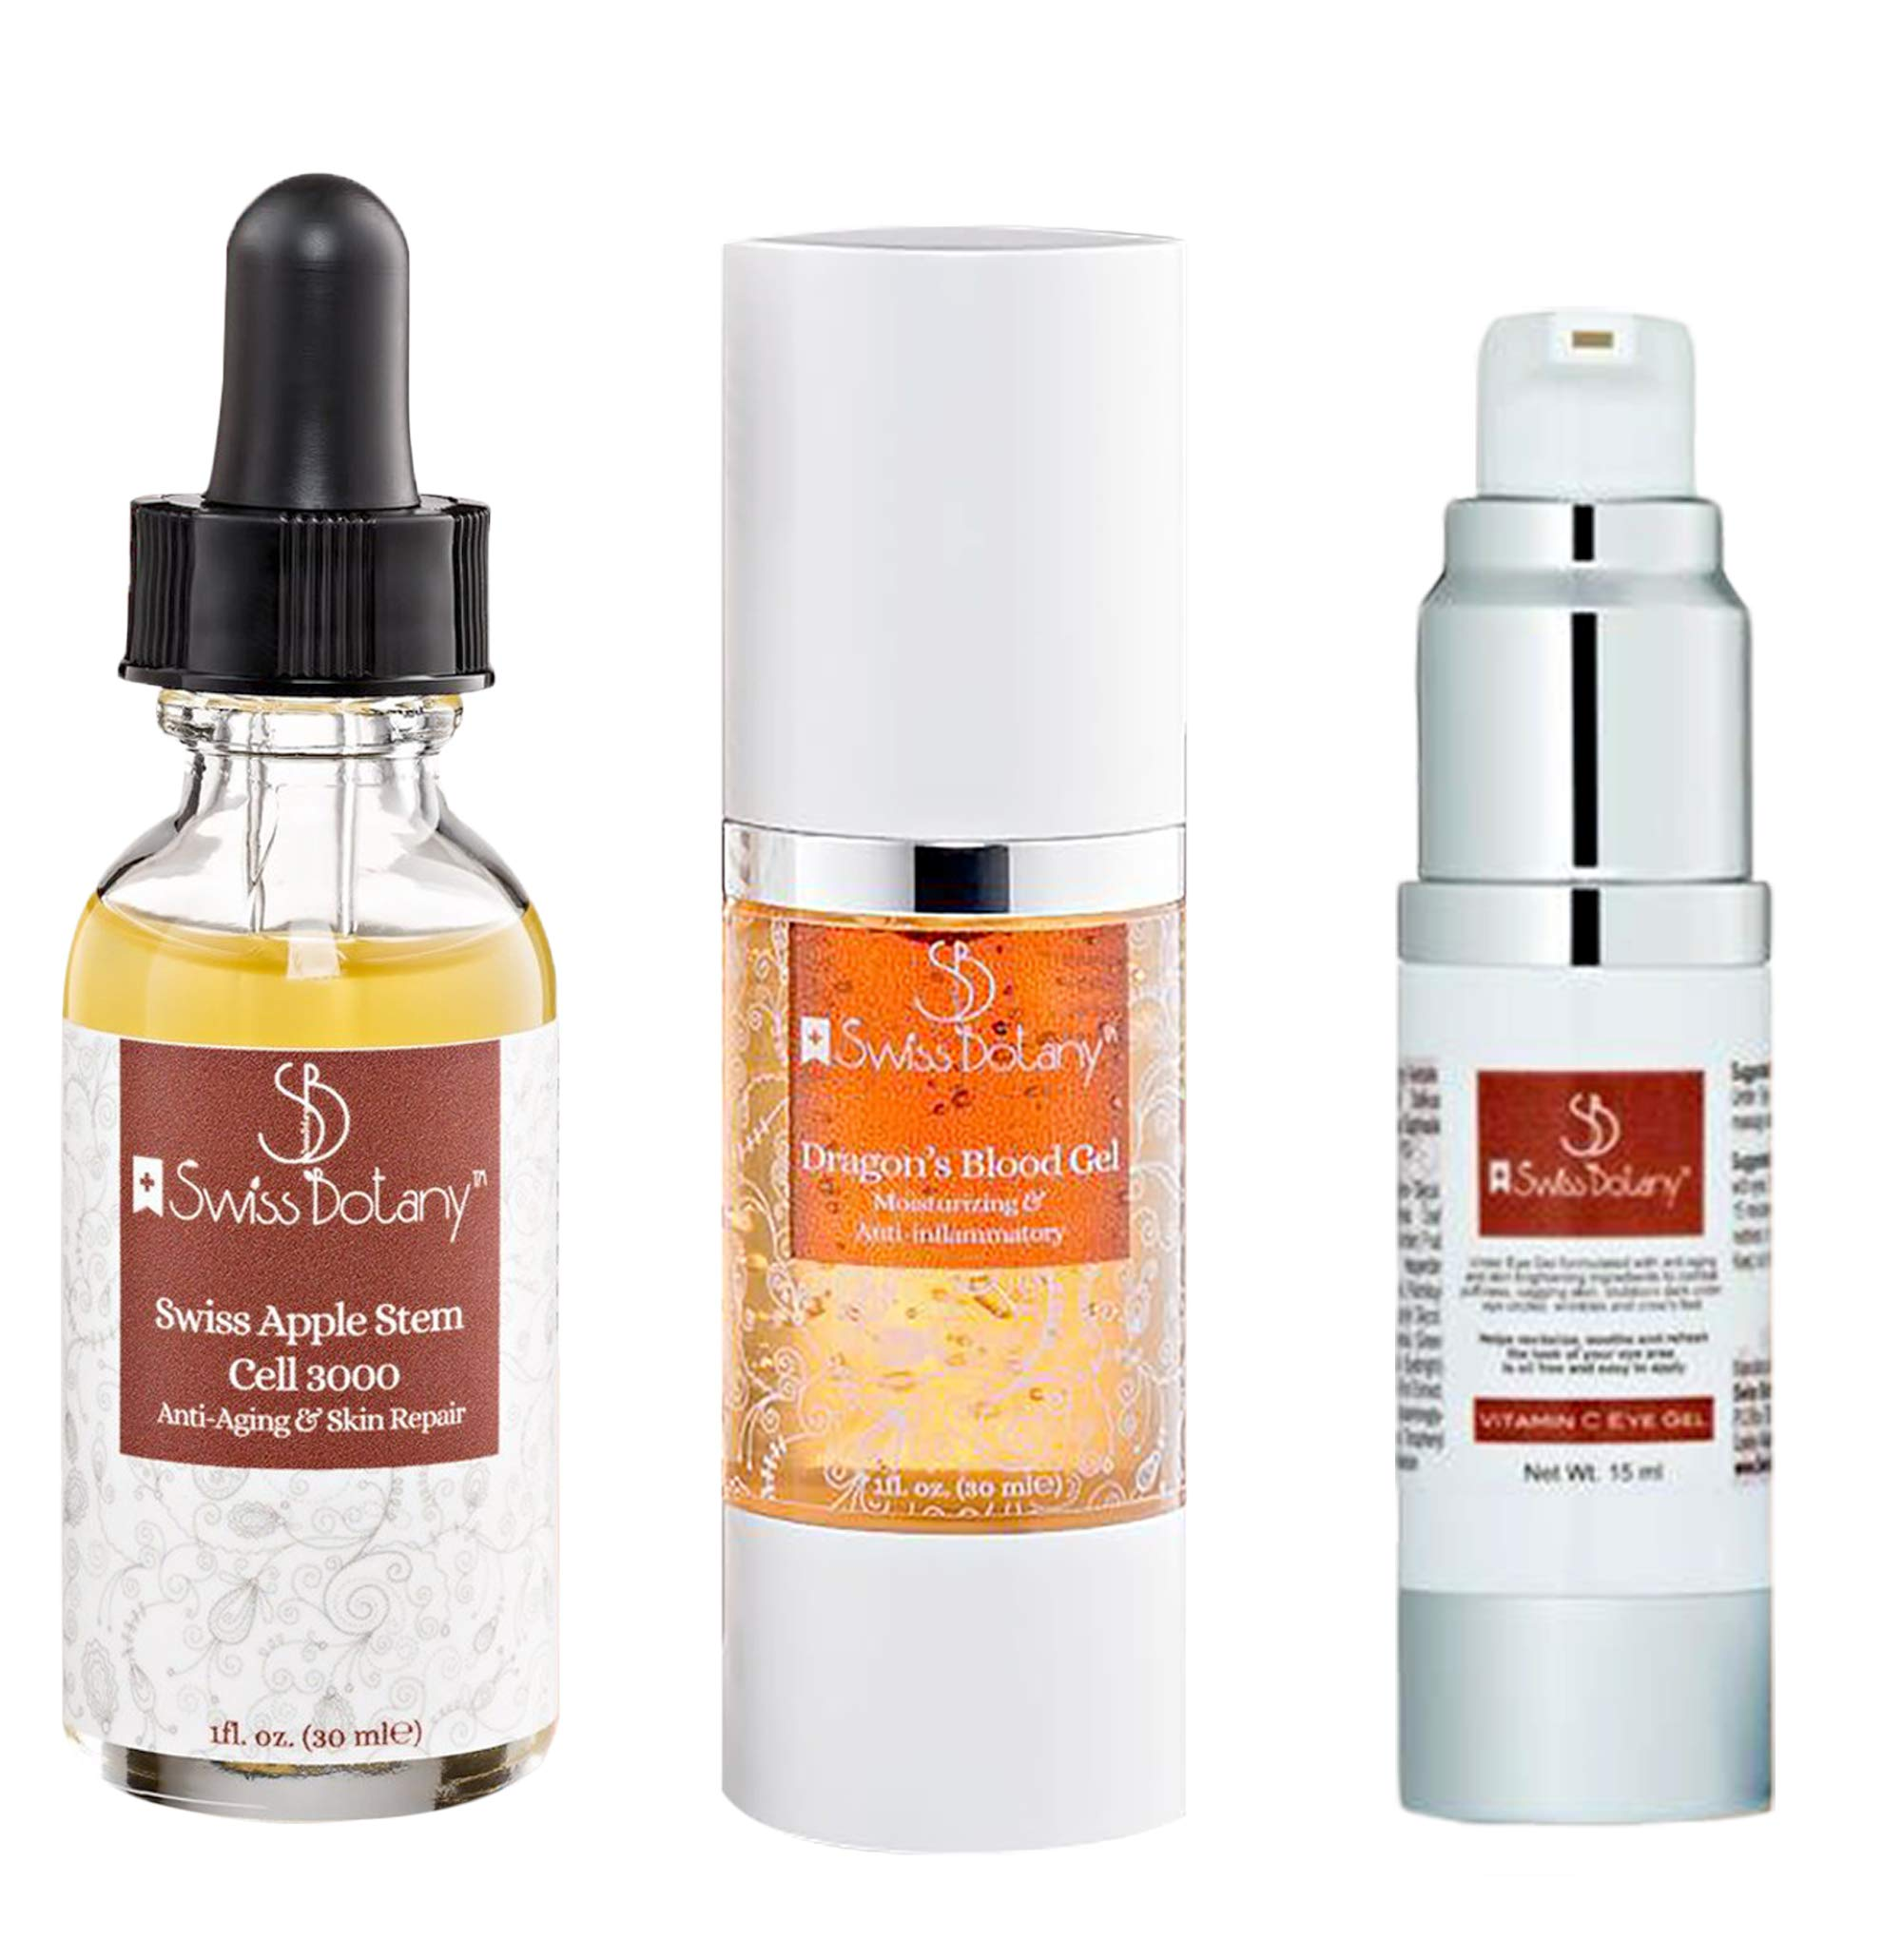 Dragons Blood 3 in 1 Eye Wrinkle Treatment - Nature's Botox Alternative, Instantly Tighten & Sculpture Facial contours - eye wrinkle serum - vitamin c complex